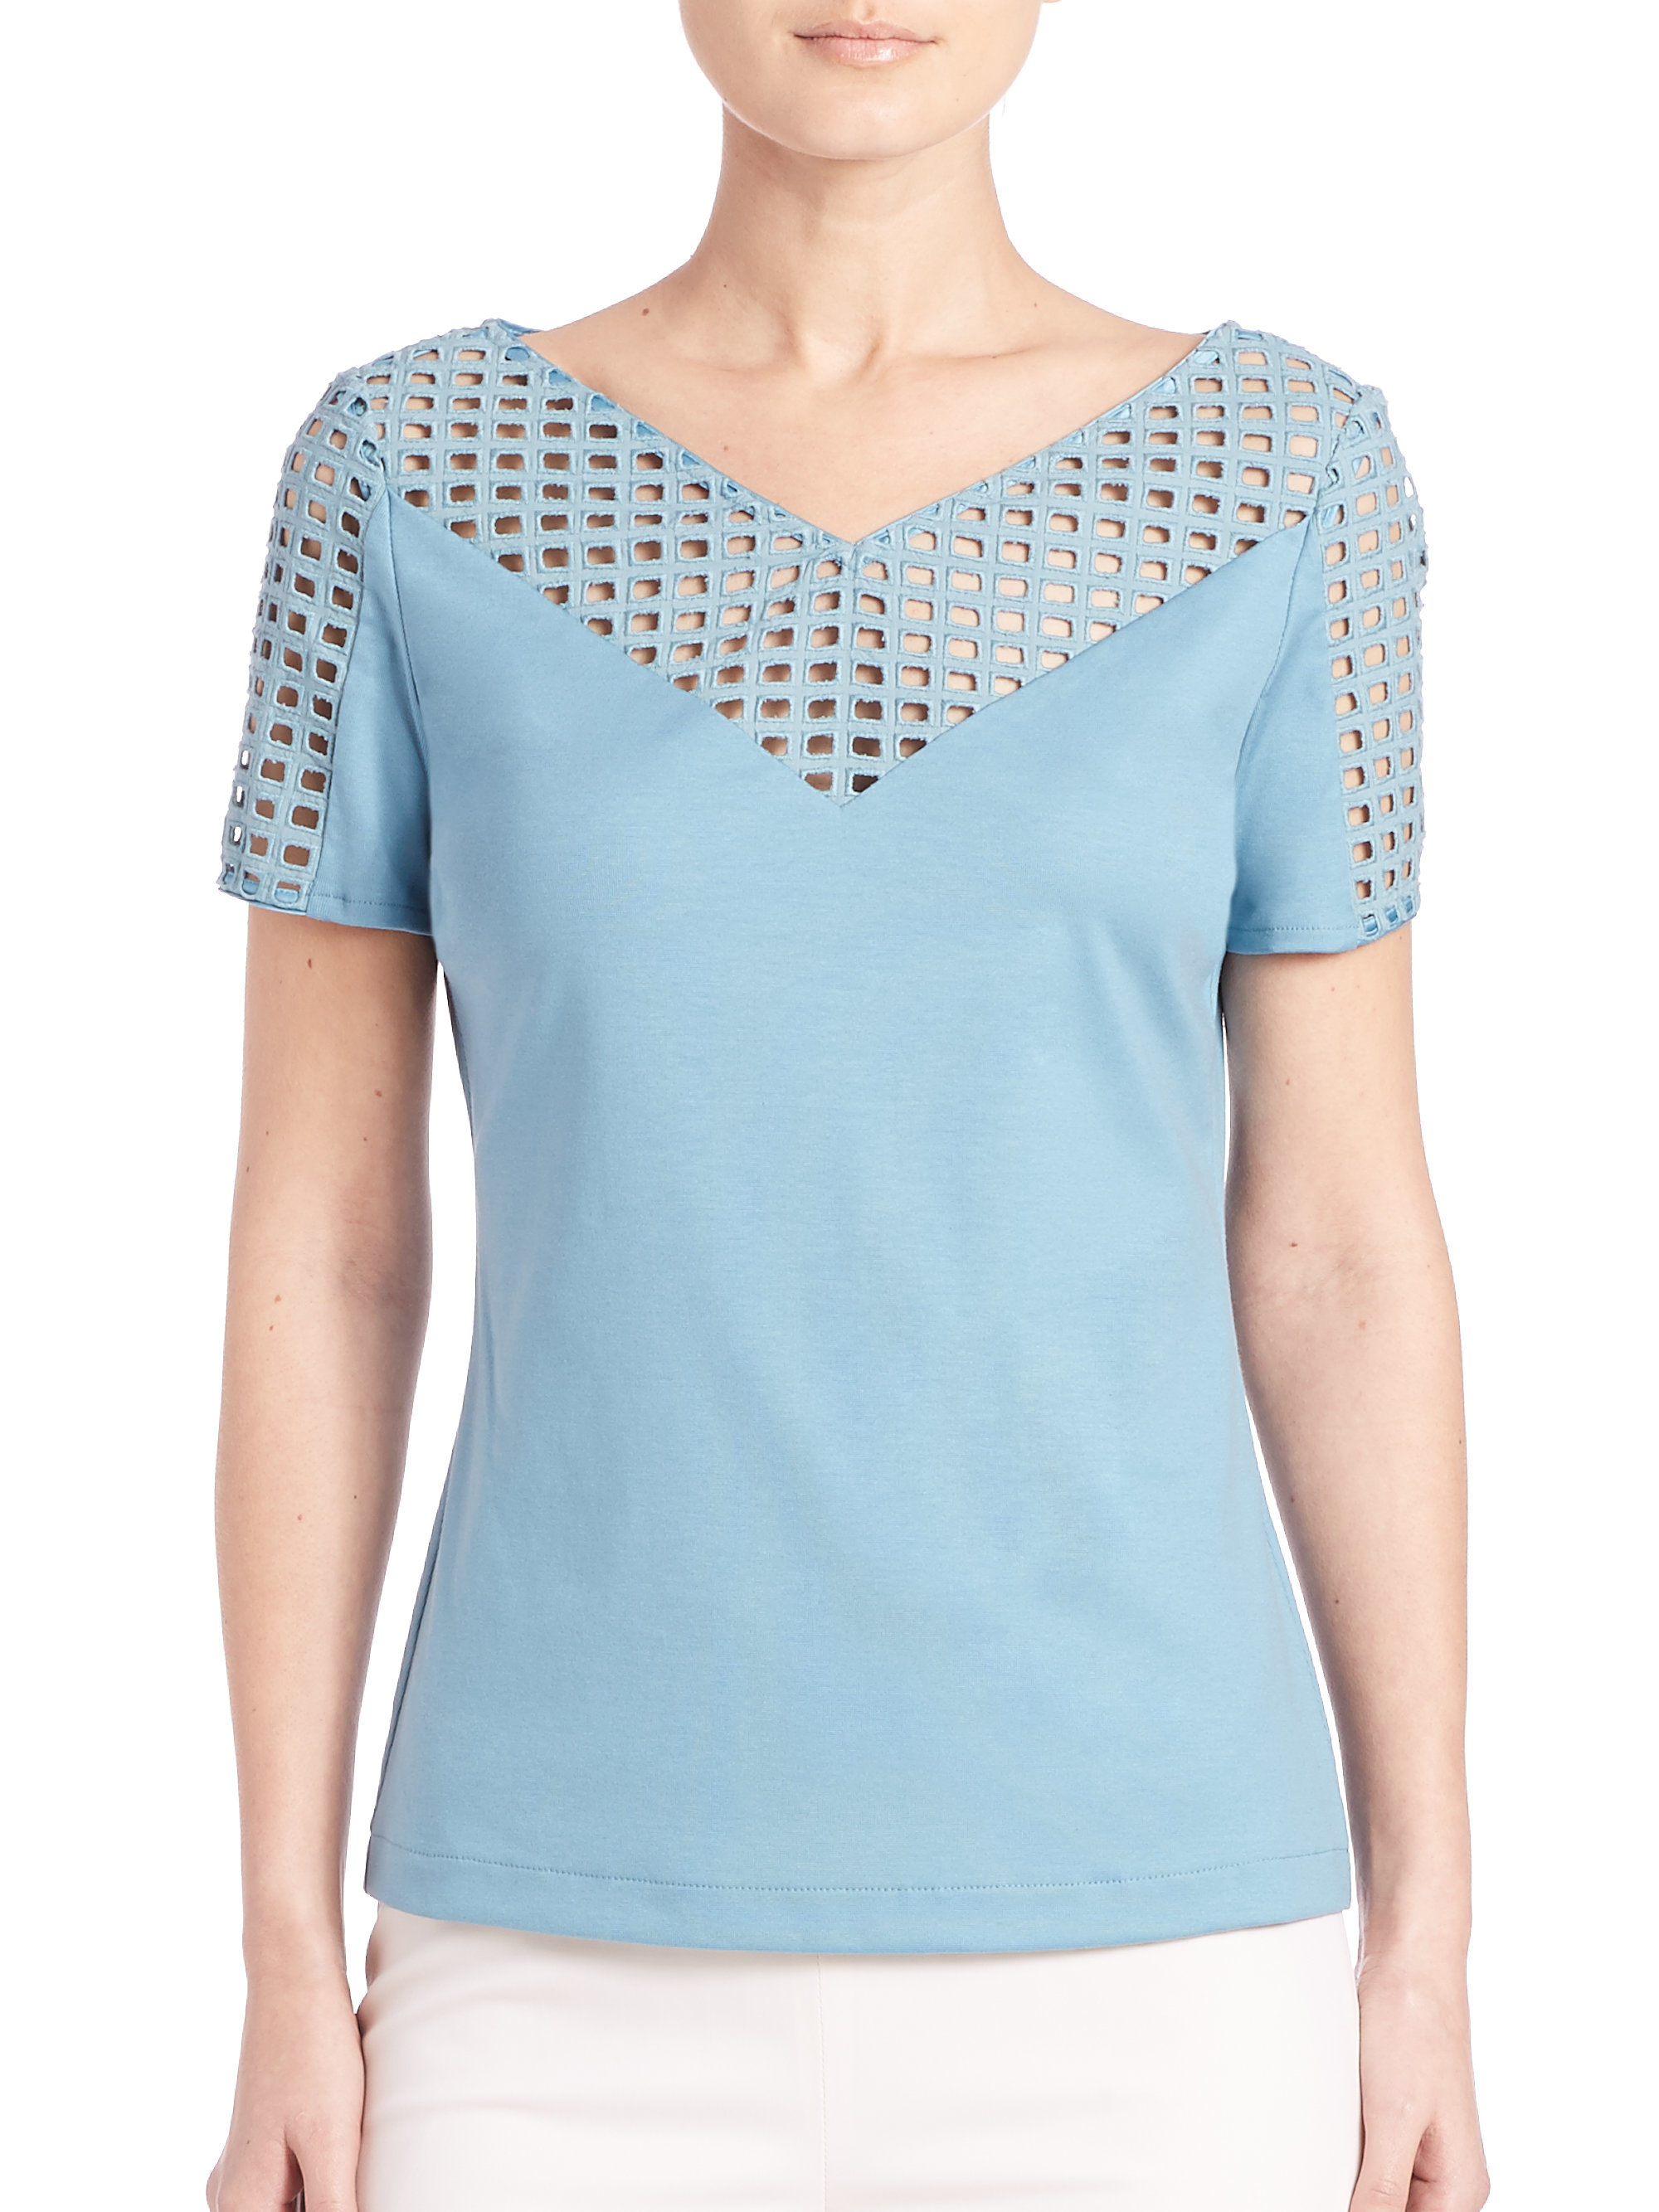 148 Best Images About Craft Ideas For Girls On Pinterest: Lafayette 148 New York Perforated Top In Blue